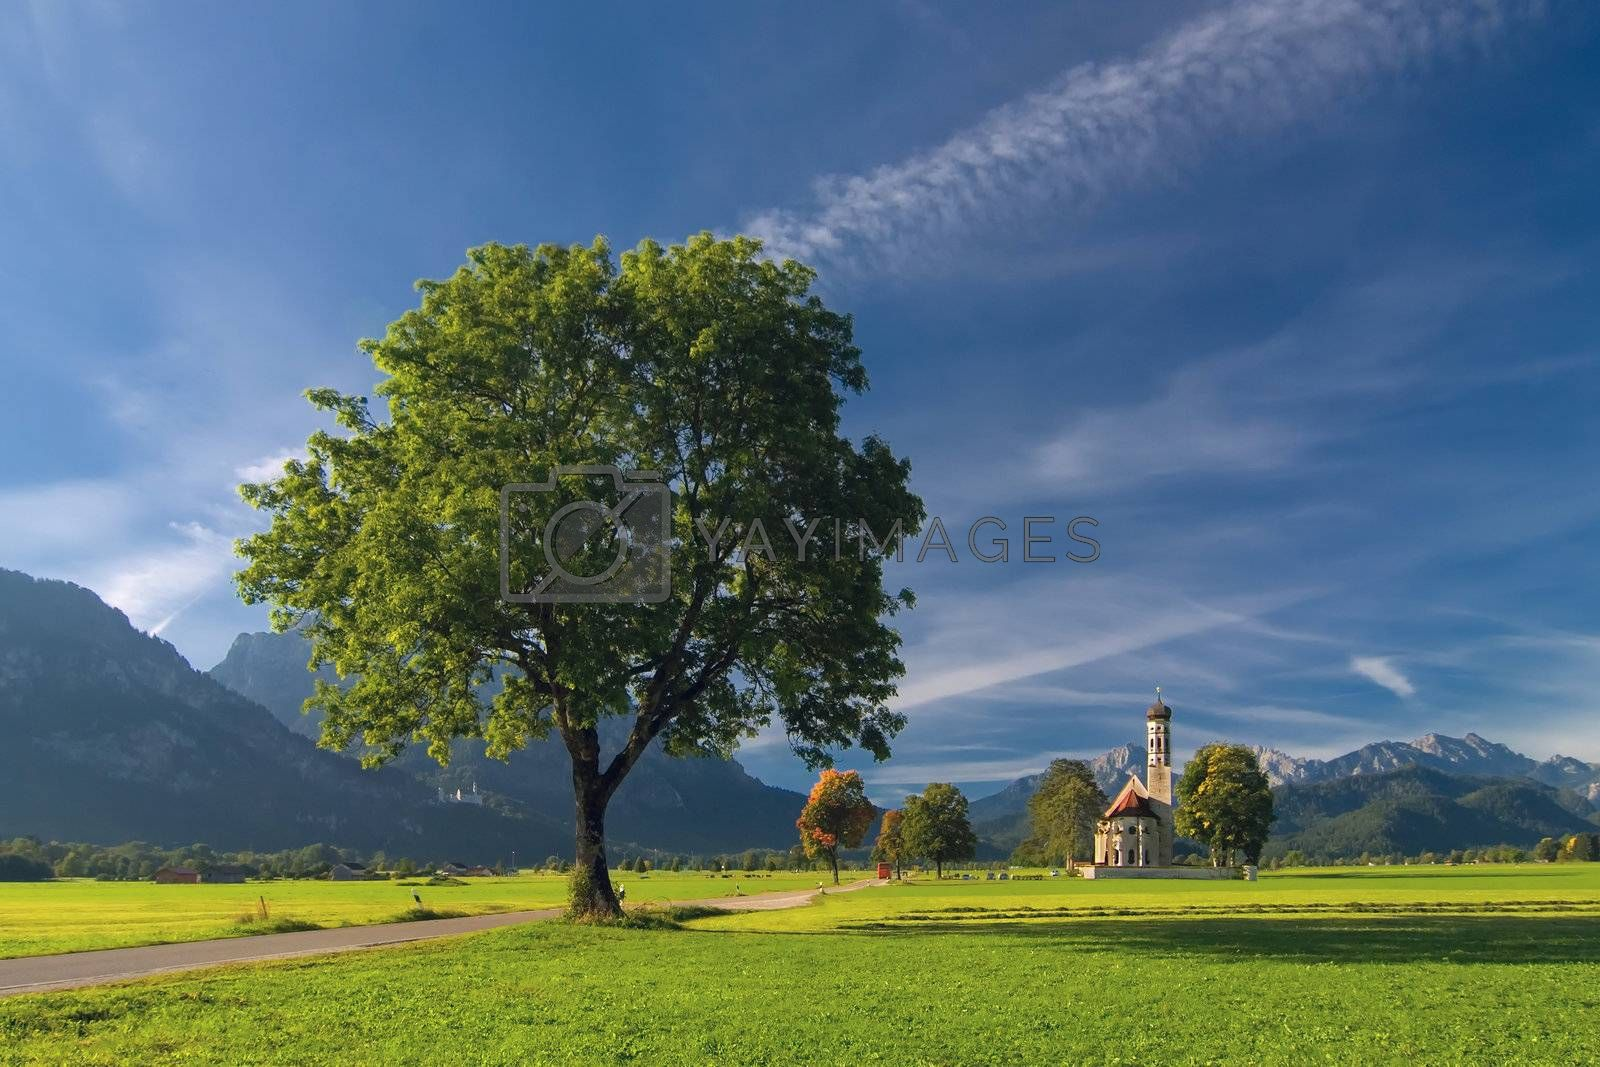 Royalty free image of Landscape with mountains and big tree by firewings